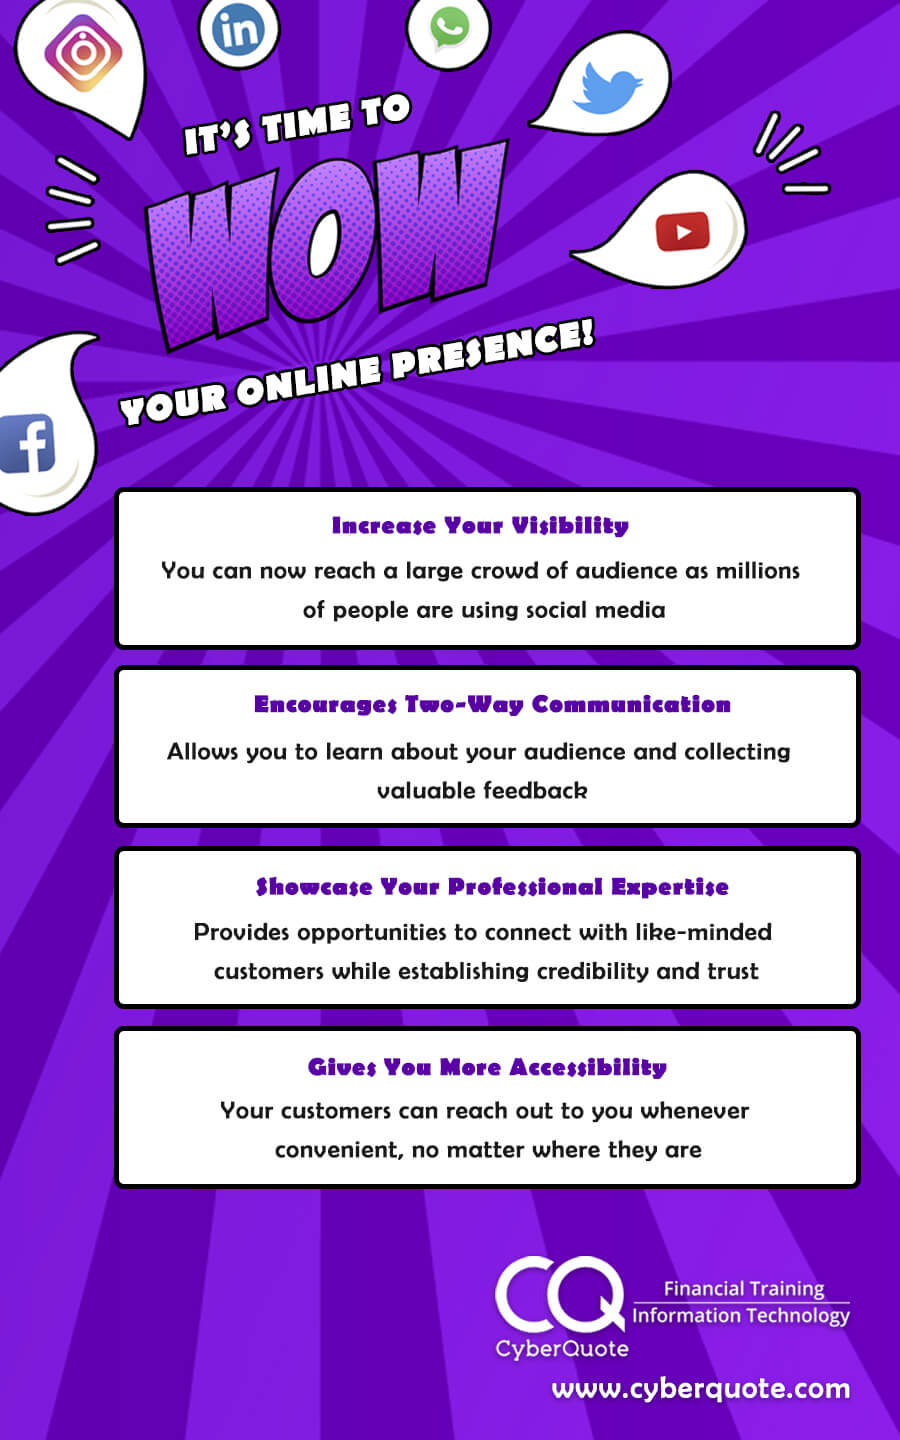 Its Time to Wow Your Online Presence